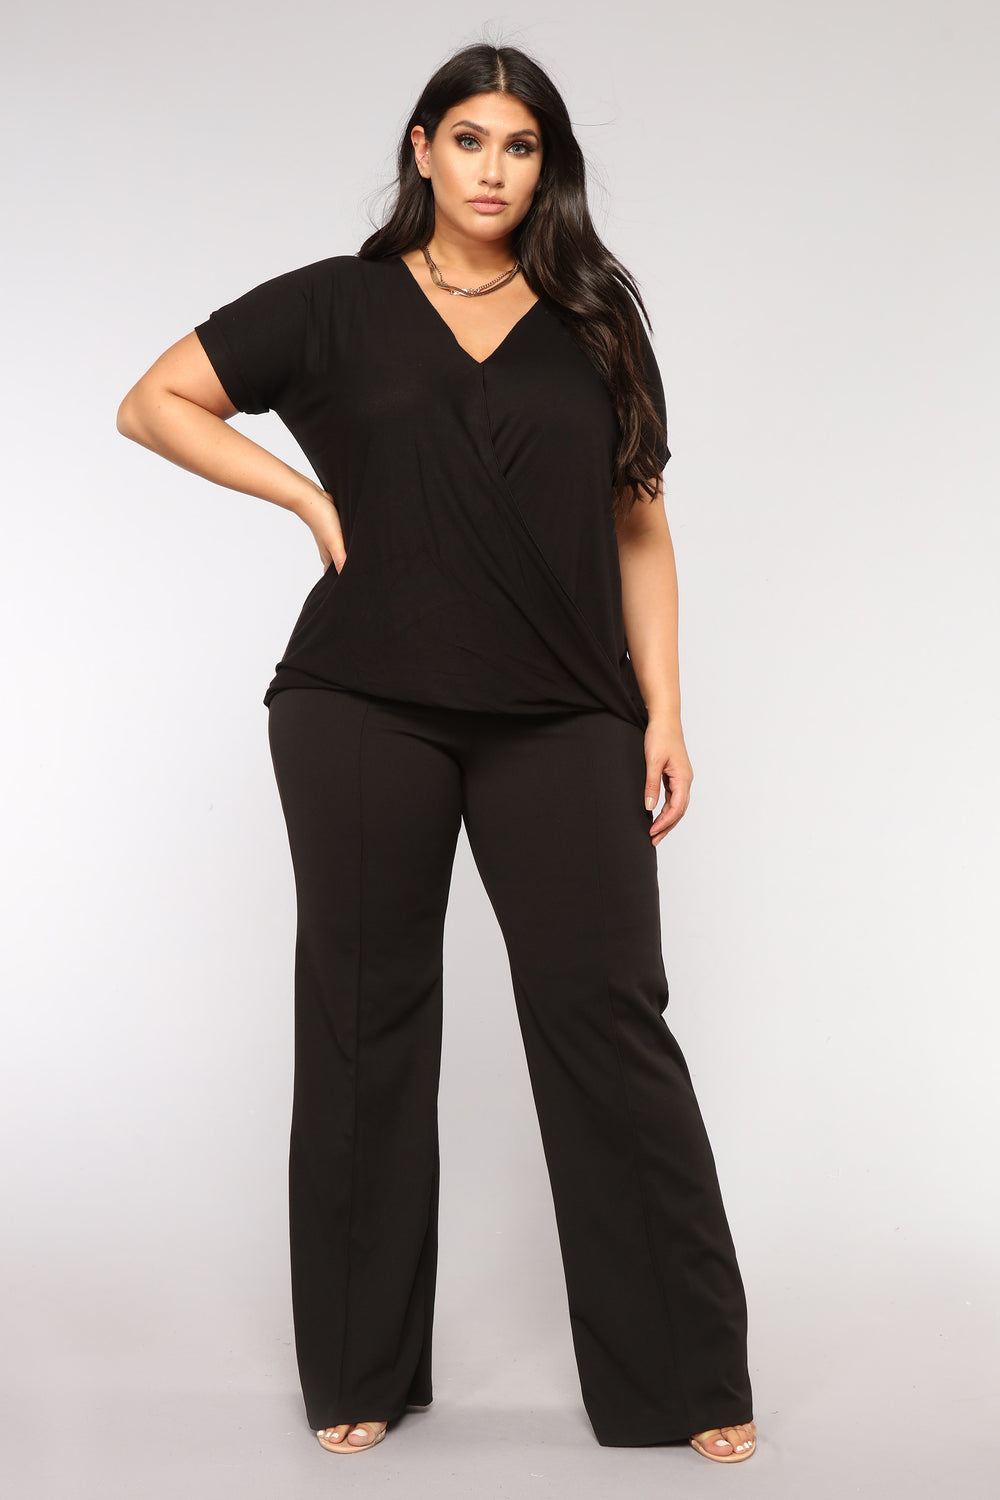 Simple Things V Neck Top - Black